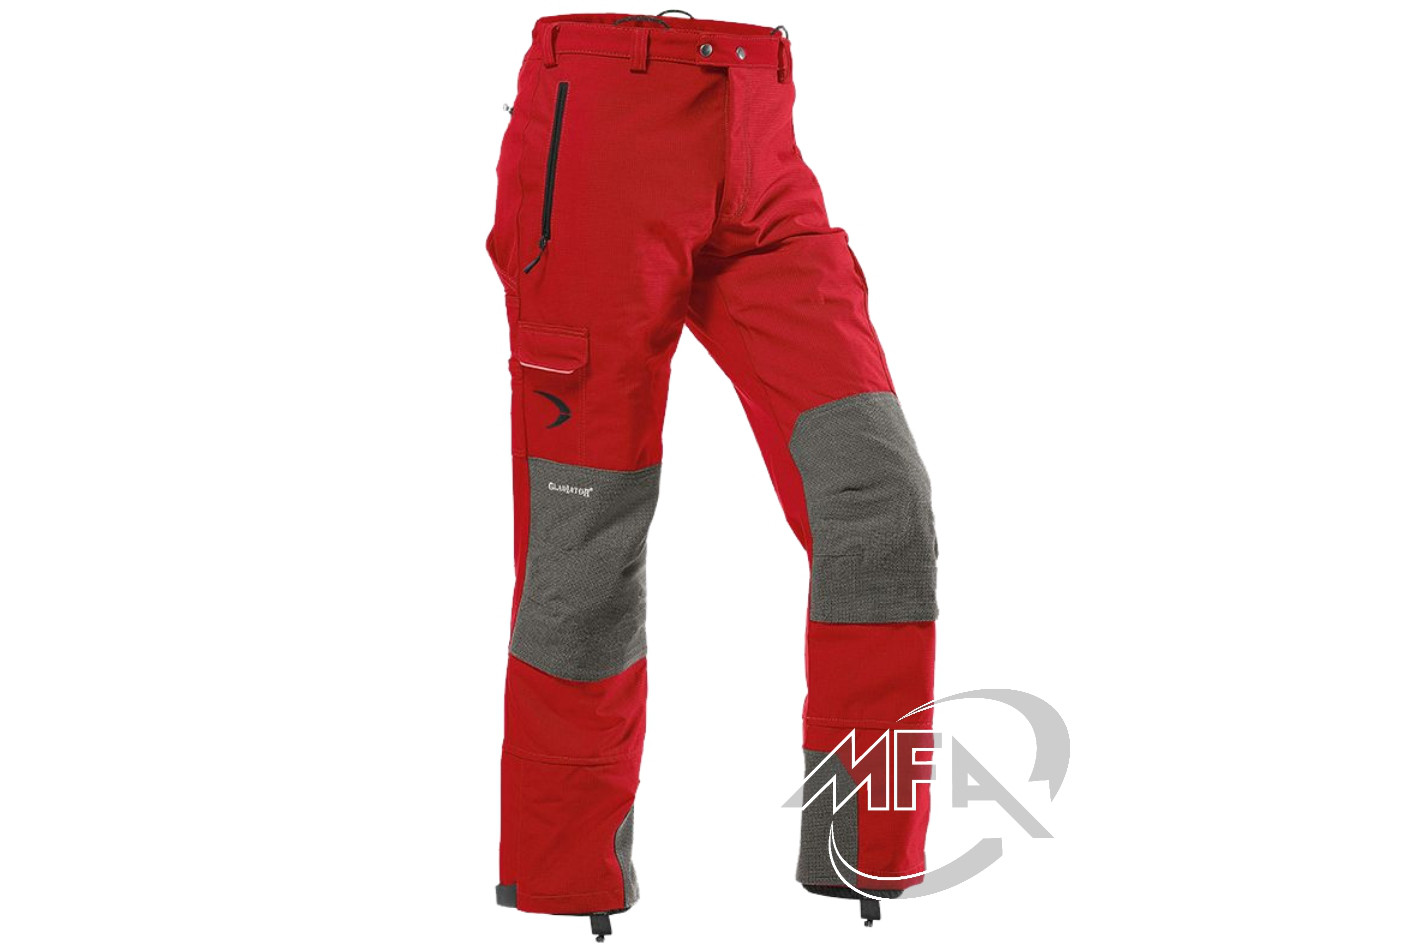 Pantalon travail / chasse Pfanner Gladiator Outdoor - Rouge